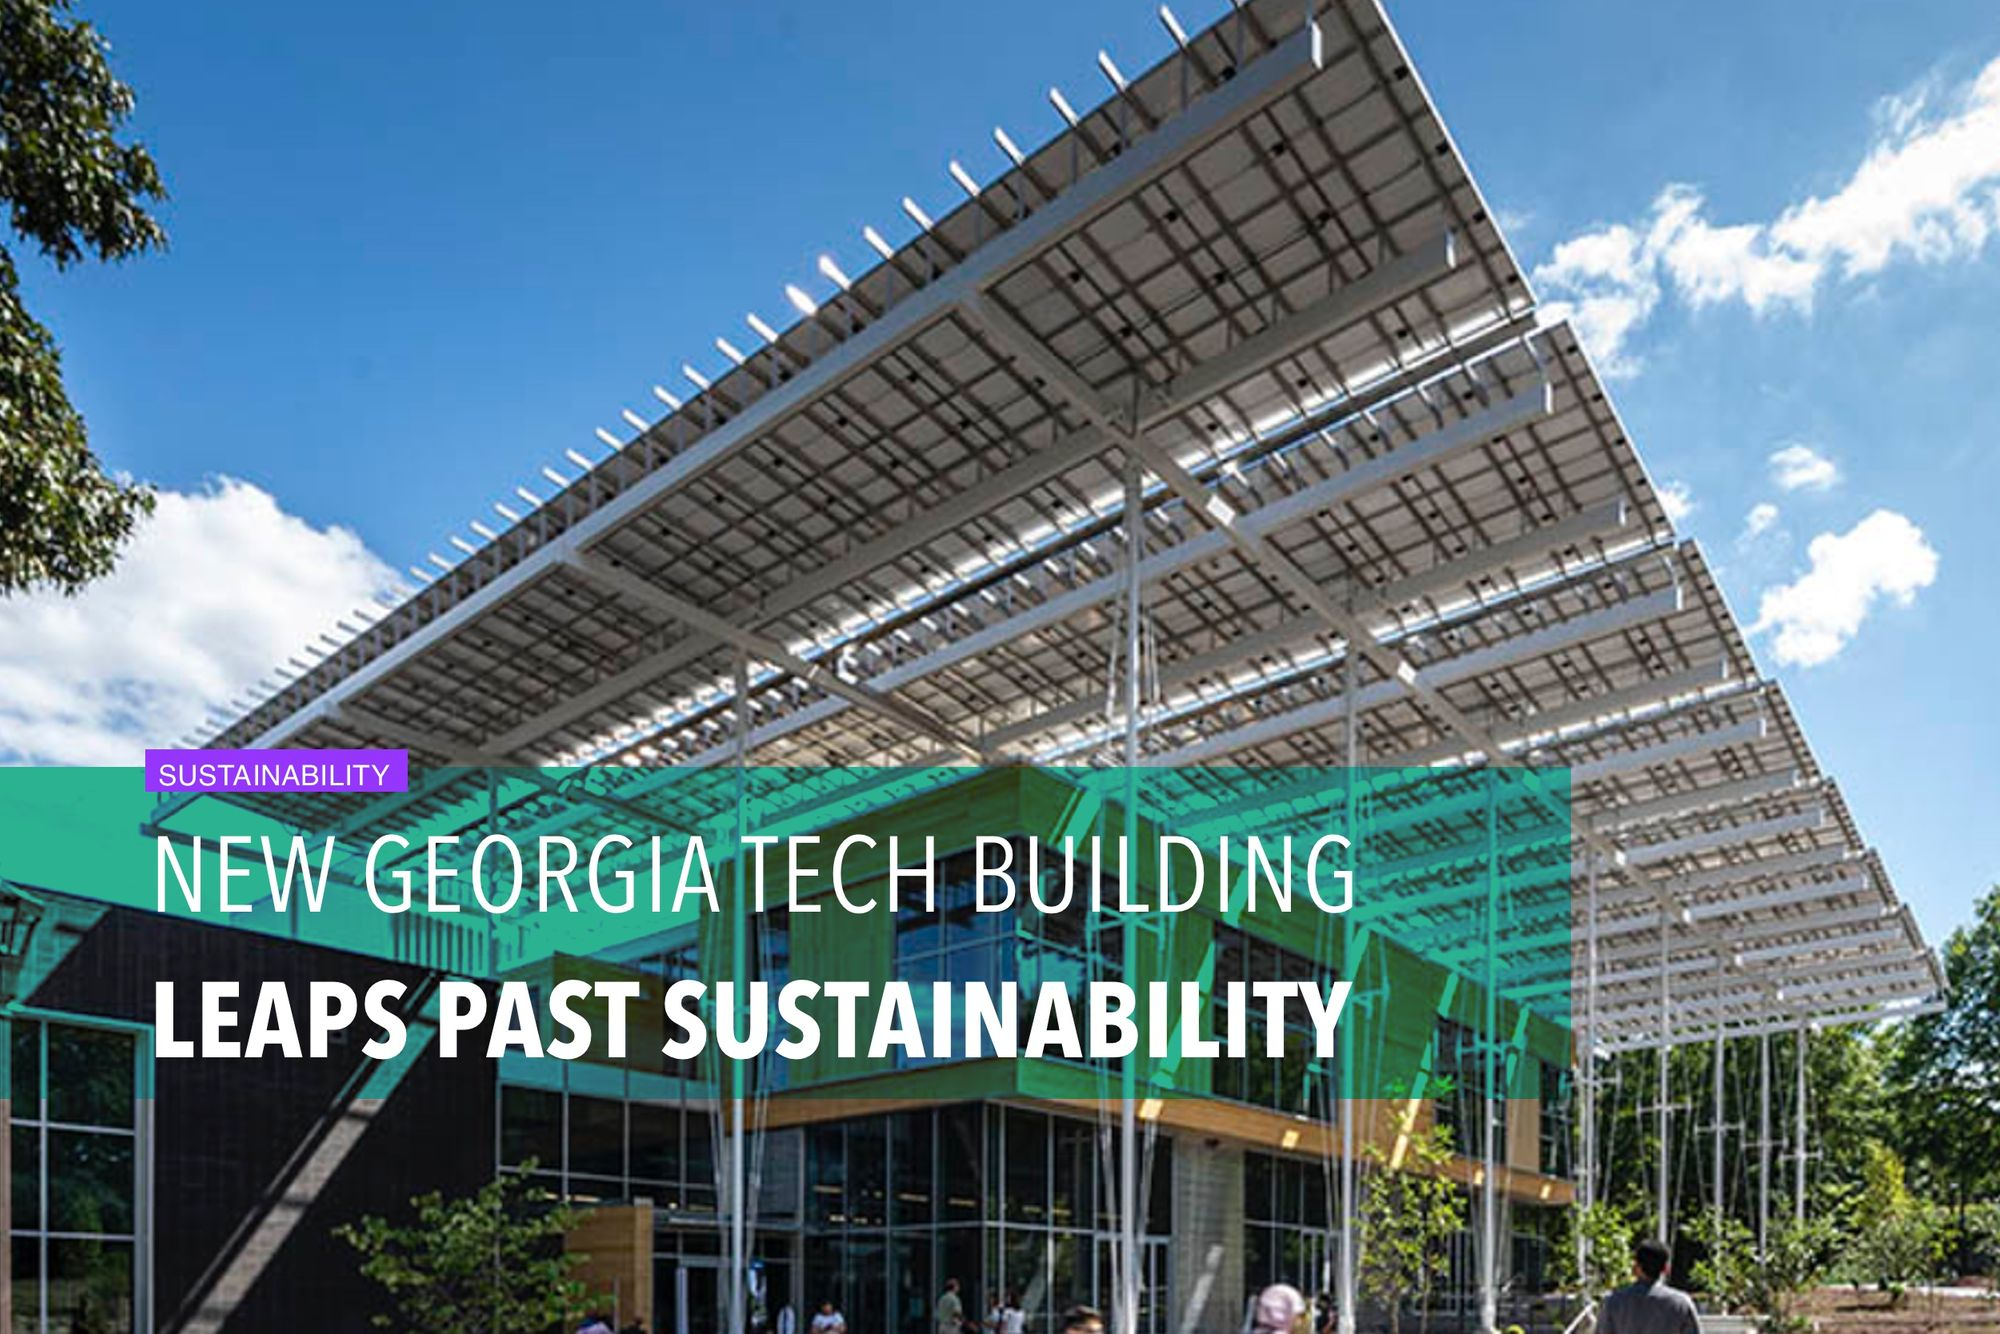 New Georgia Tech building leaps past sustainability